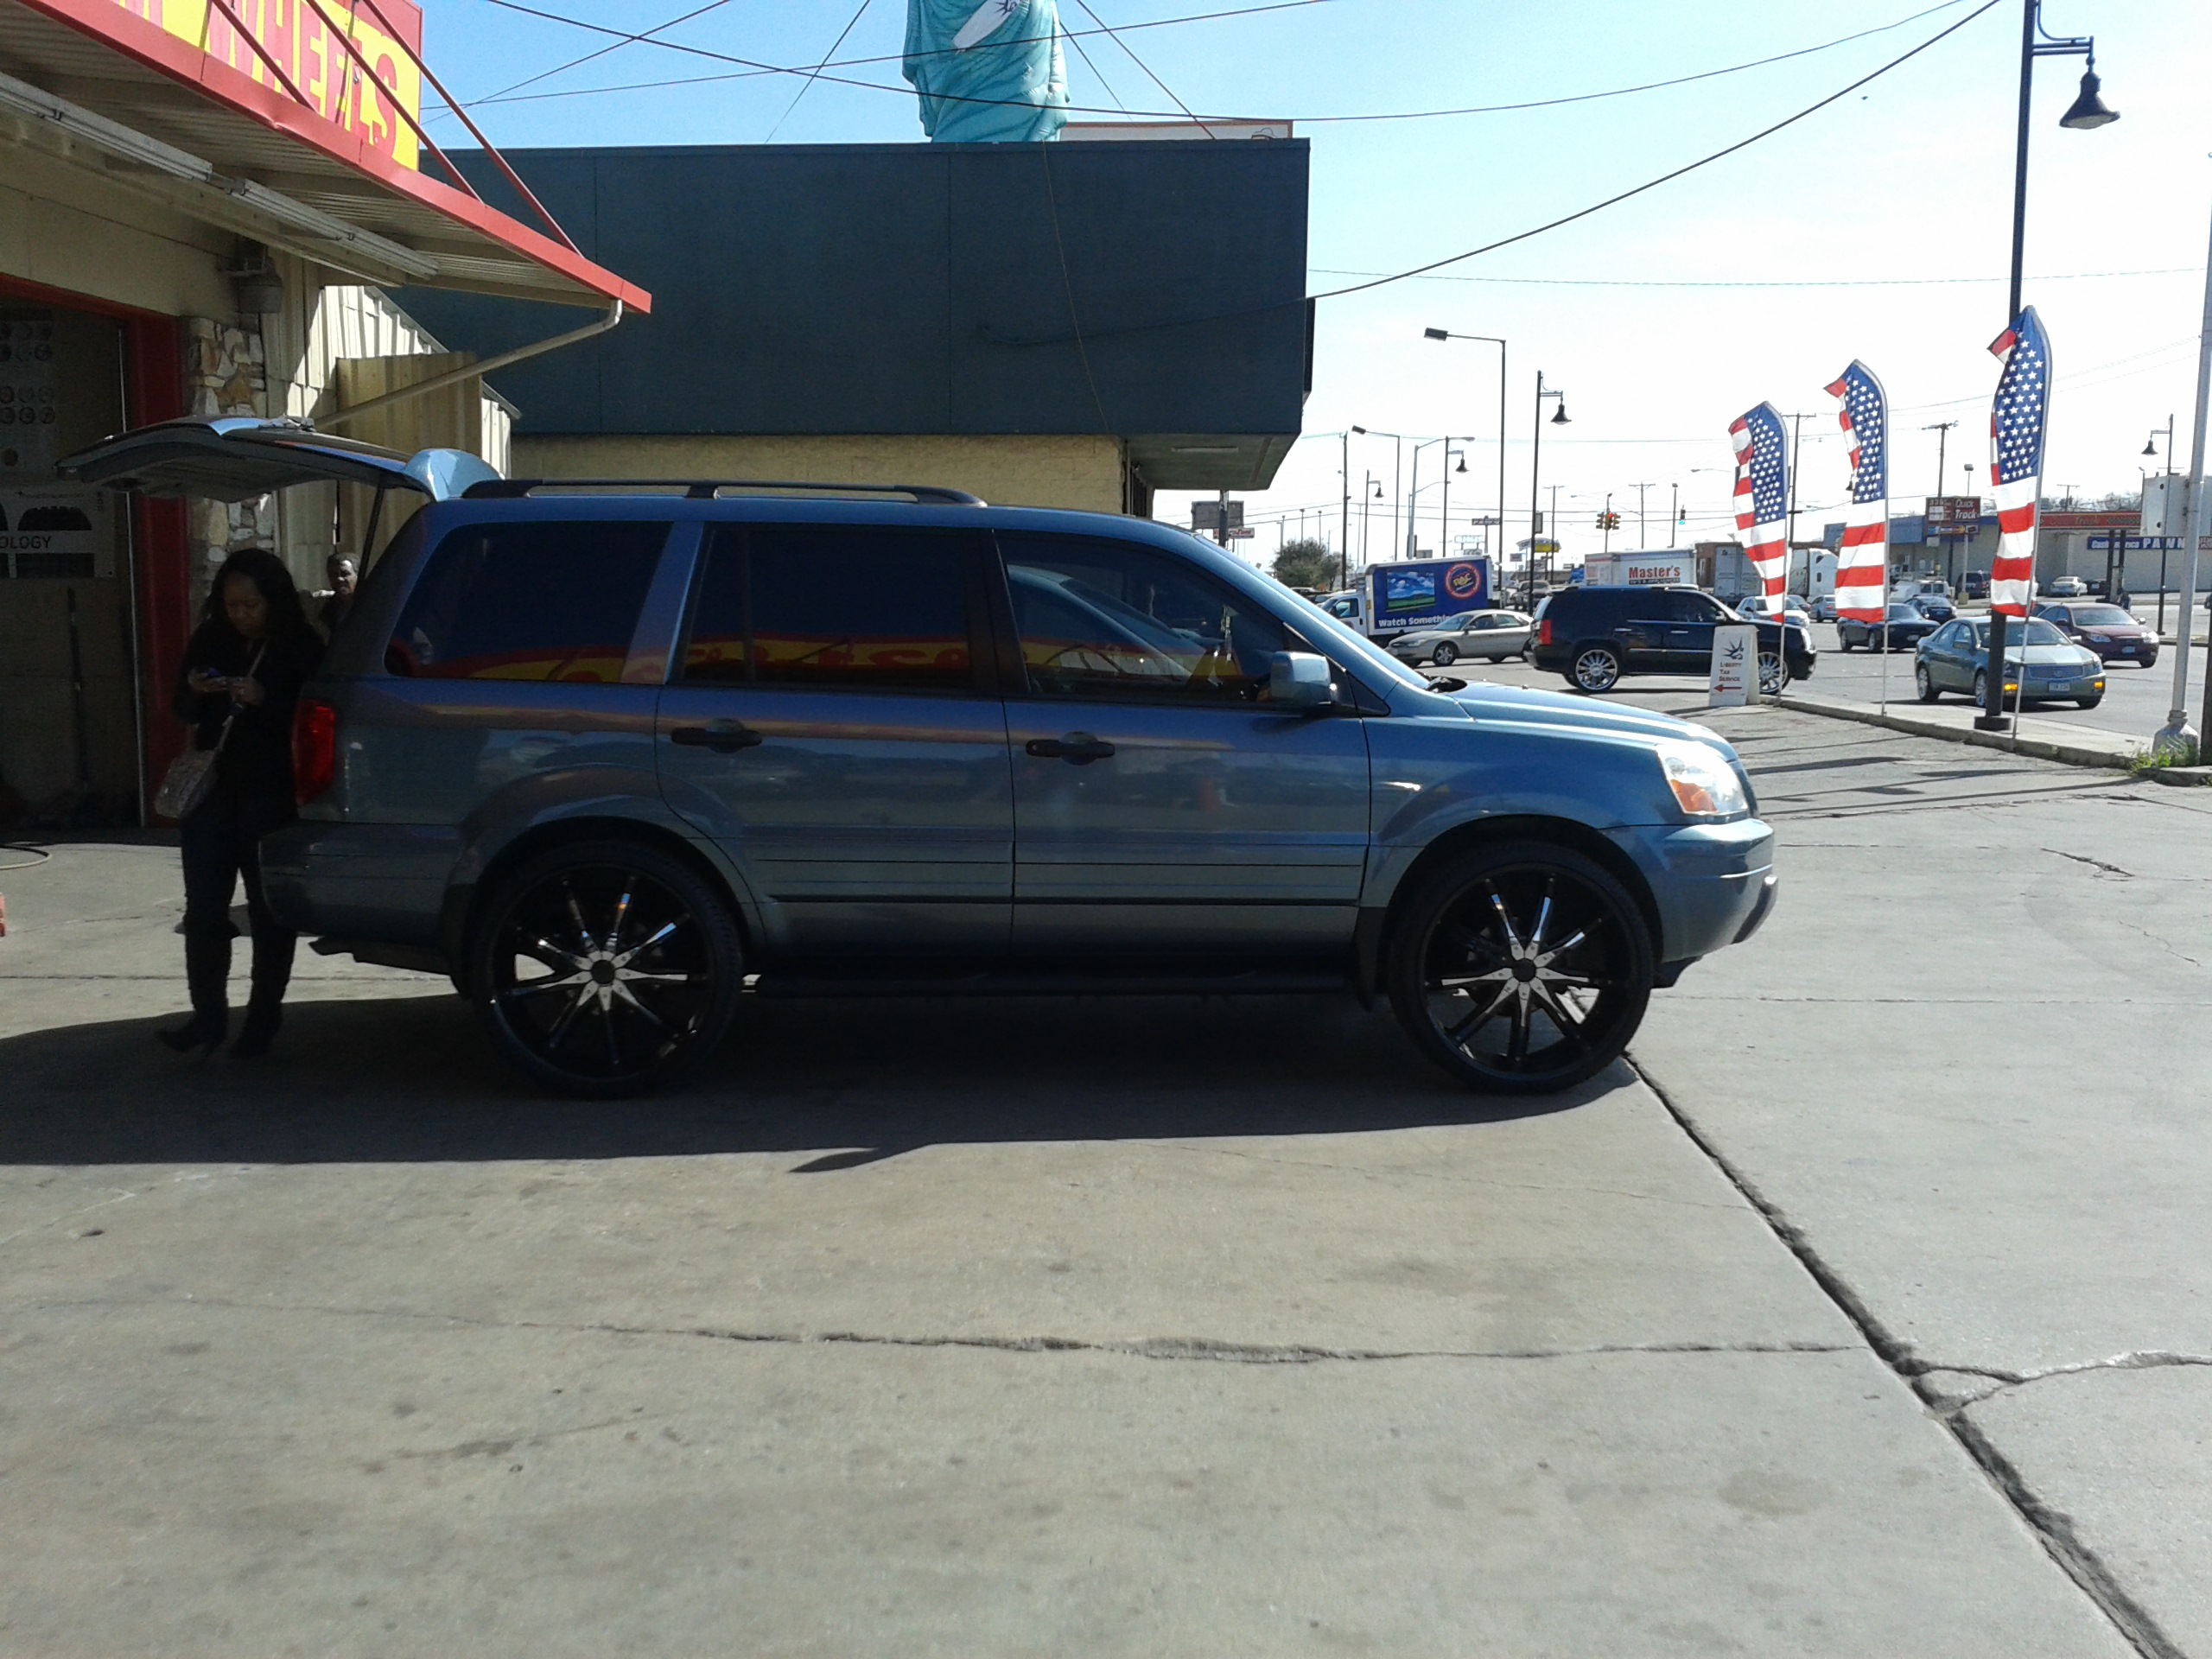 Ford Fusion Black Rims >> david76134 2005 Honda Pilot Specs, Photos, Modification ...